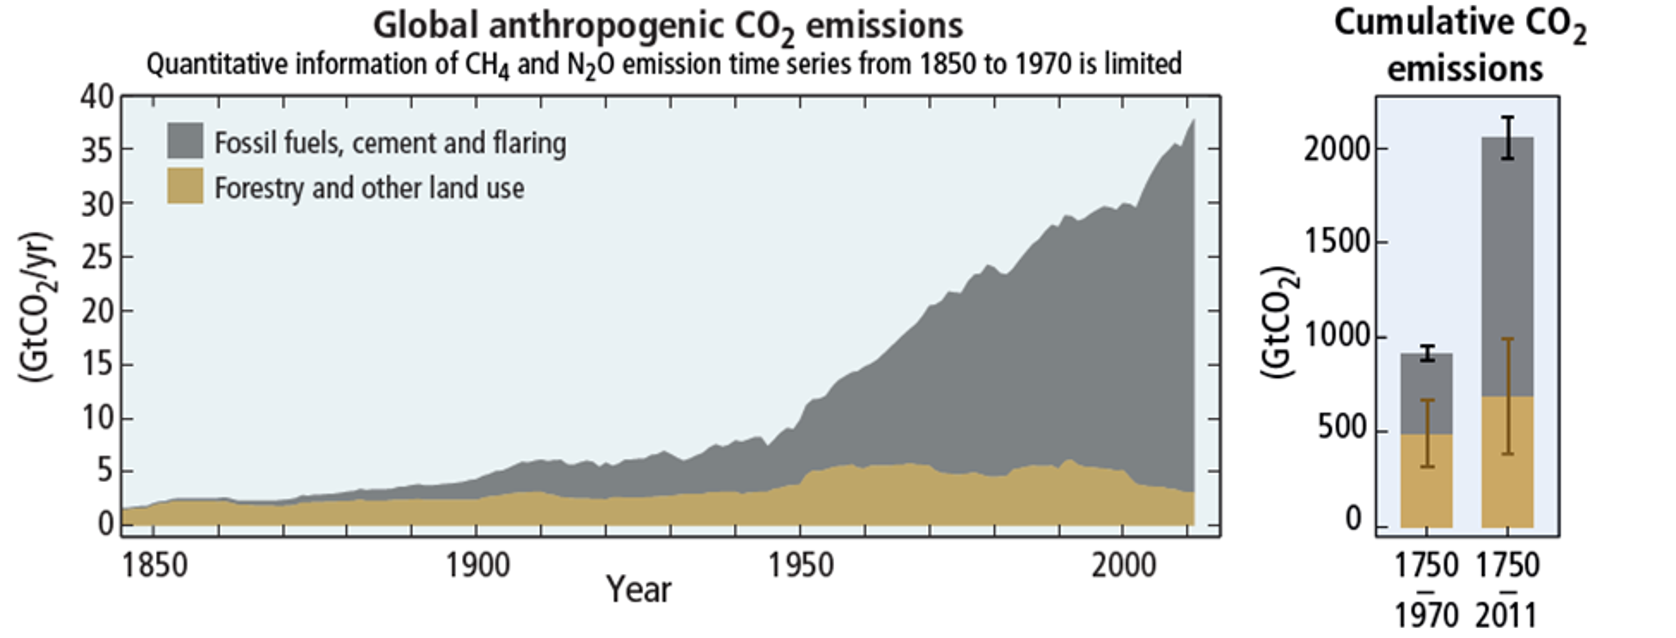 Global anthropogenic CO2 emissions